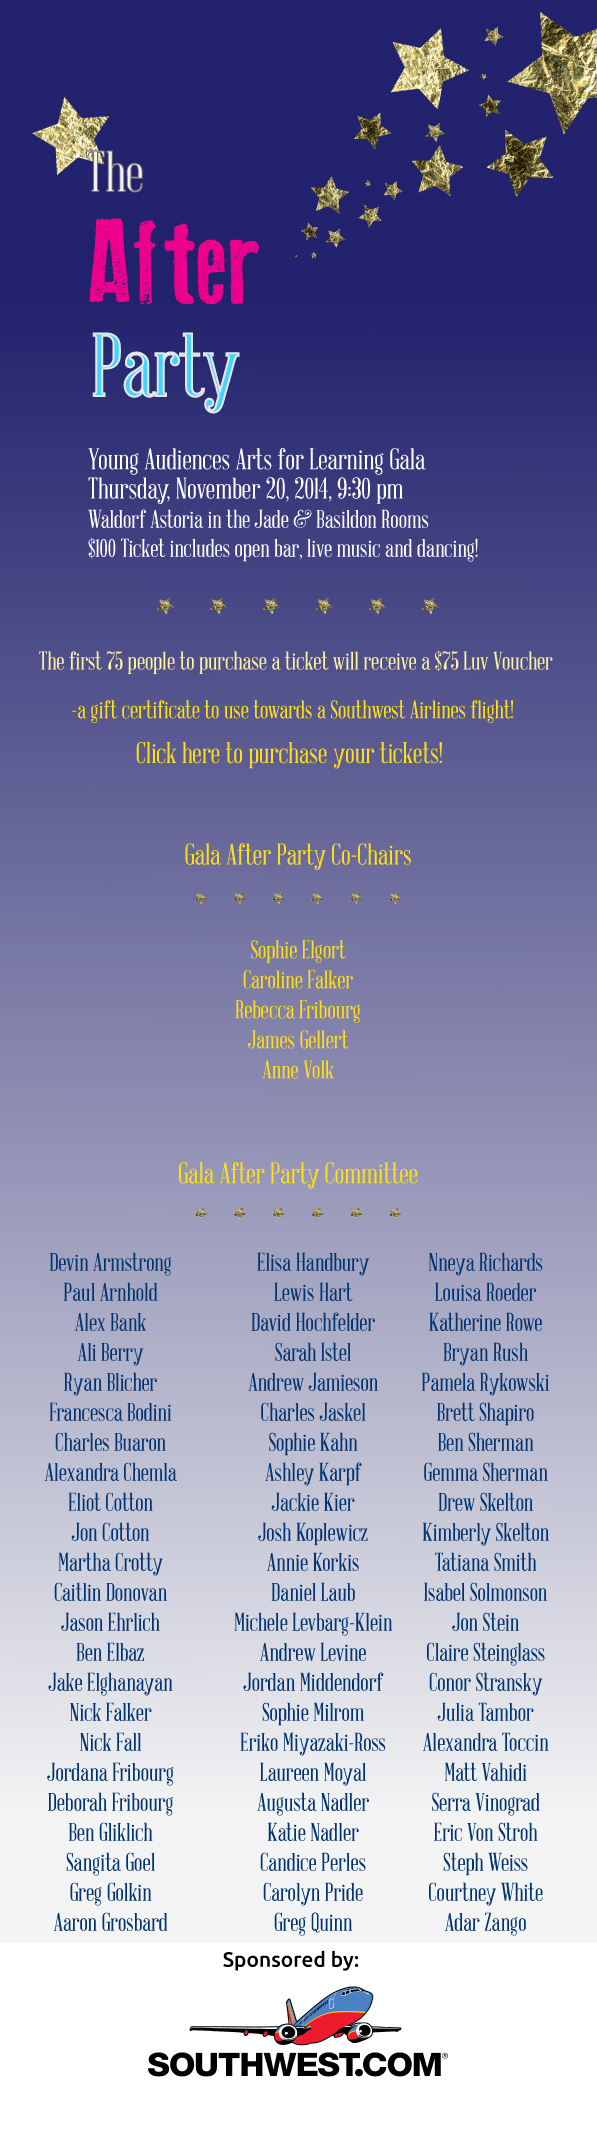 Young Audiences Gala After Party! Get your LUV Vouchers today!